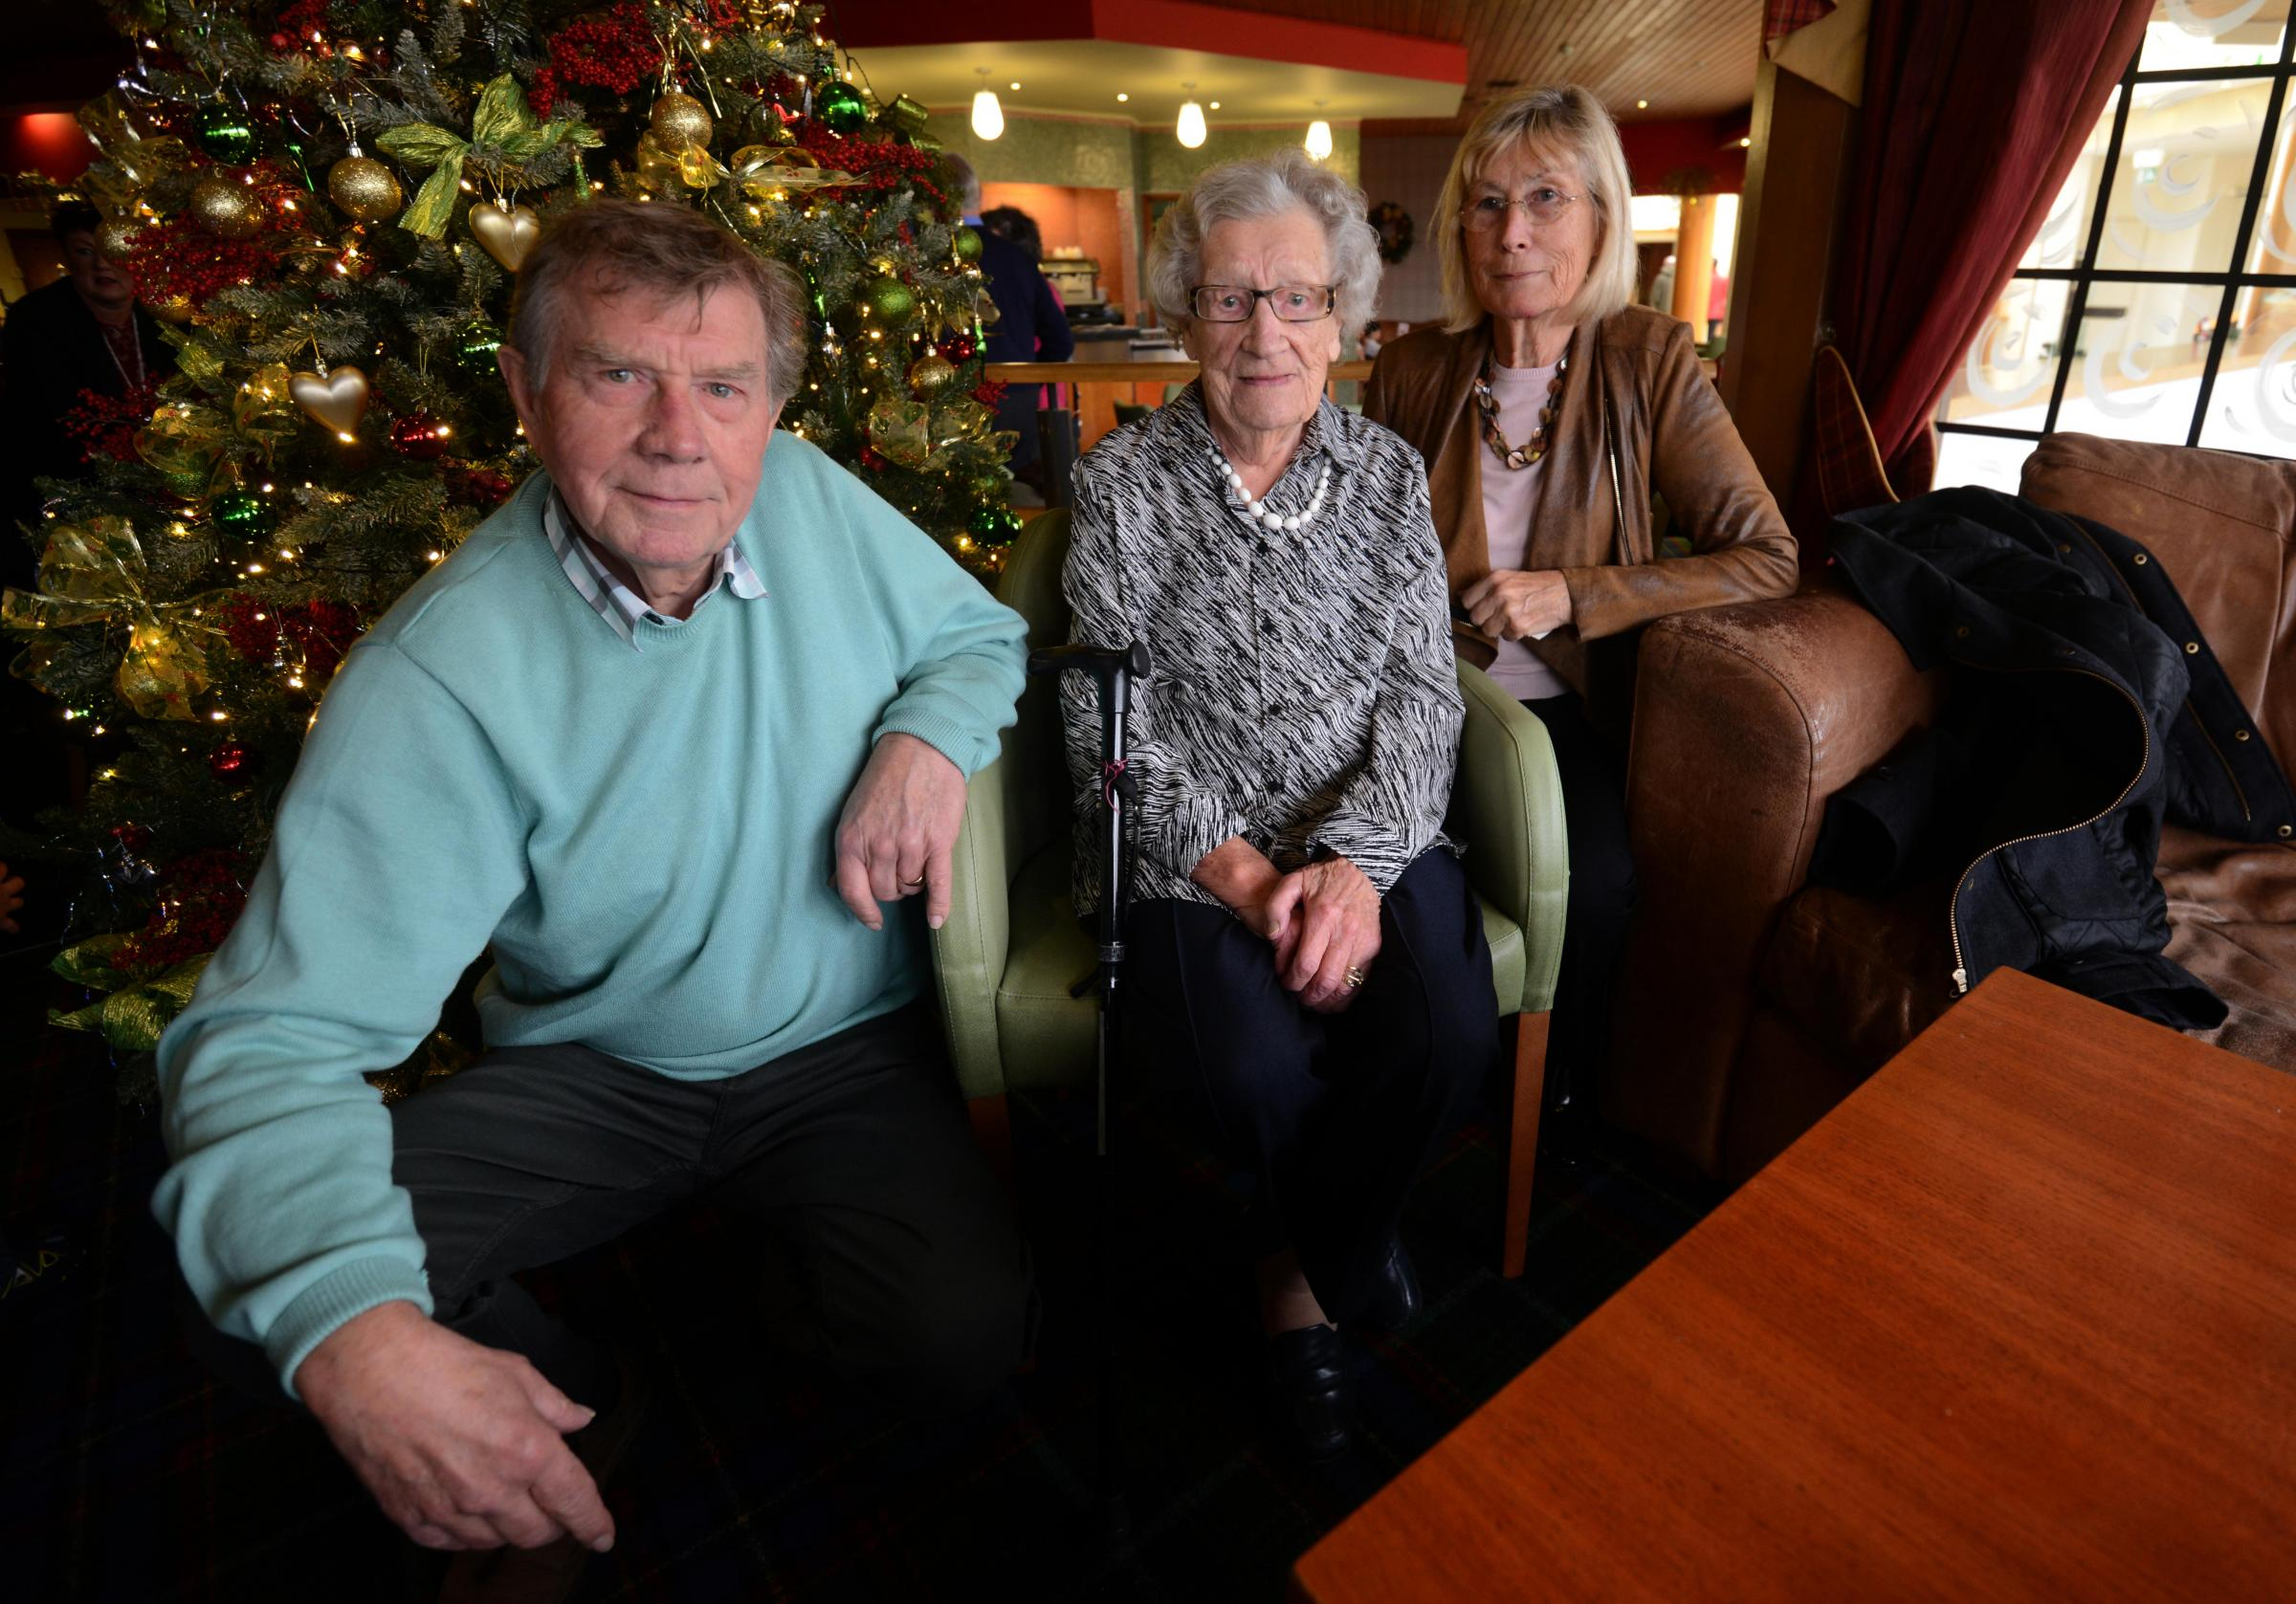 Violet Ewen celebrated her 100th birthday at Blunsdon House Hotel with son Clive Ewen (left) and daughter Mavis Cork.